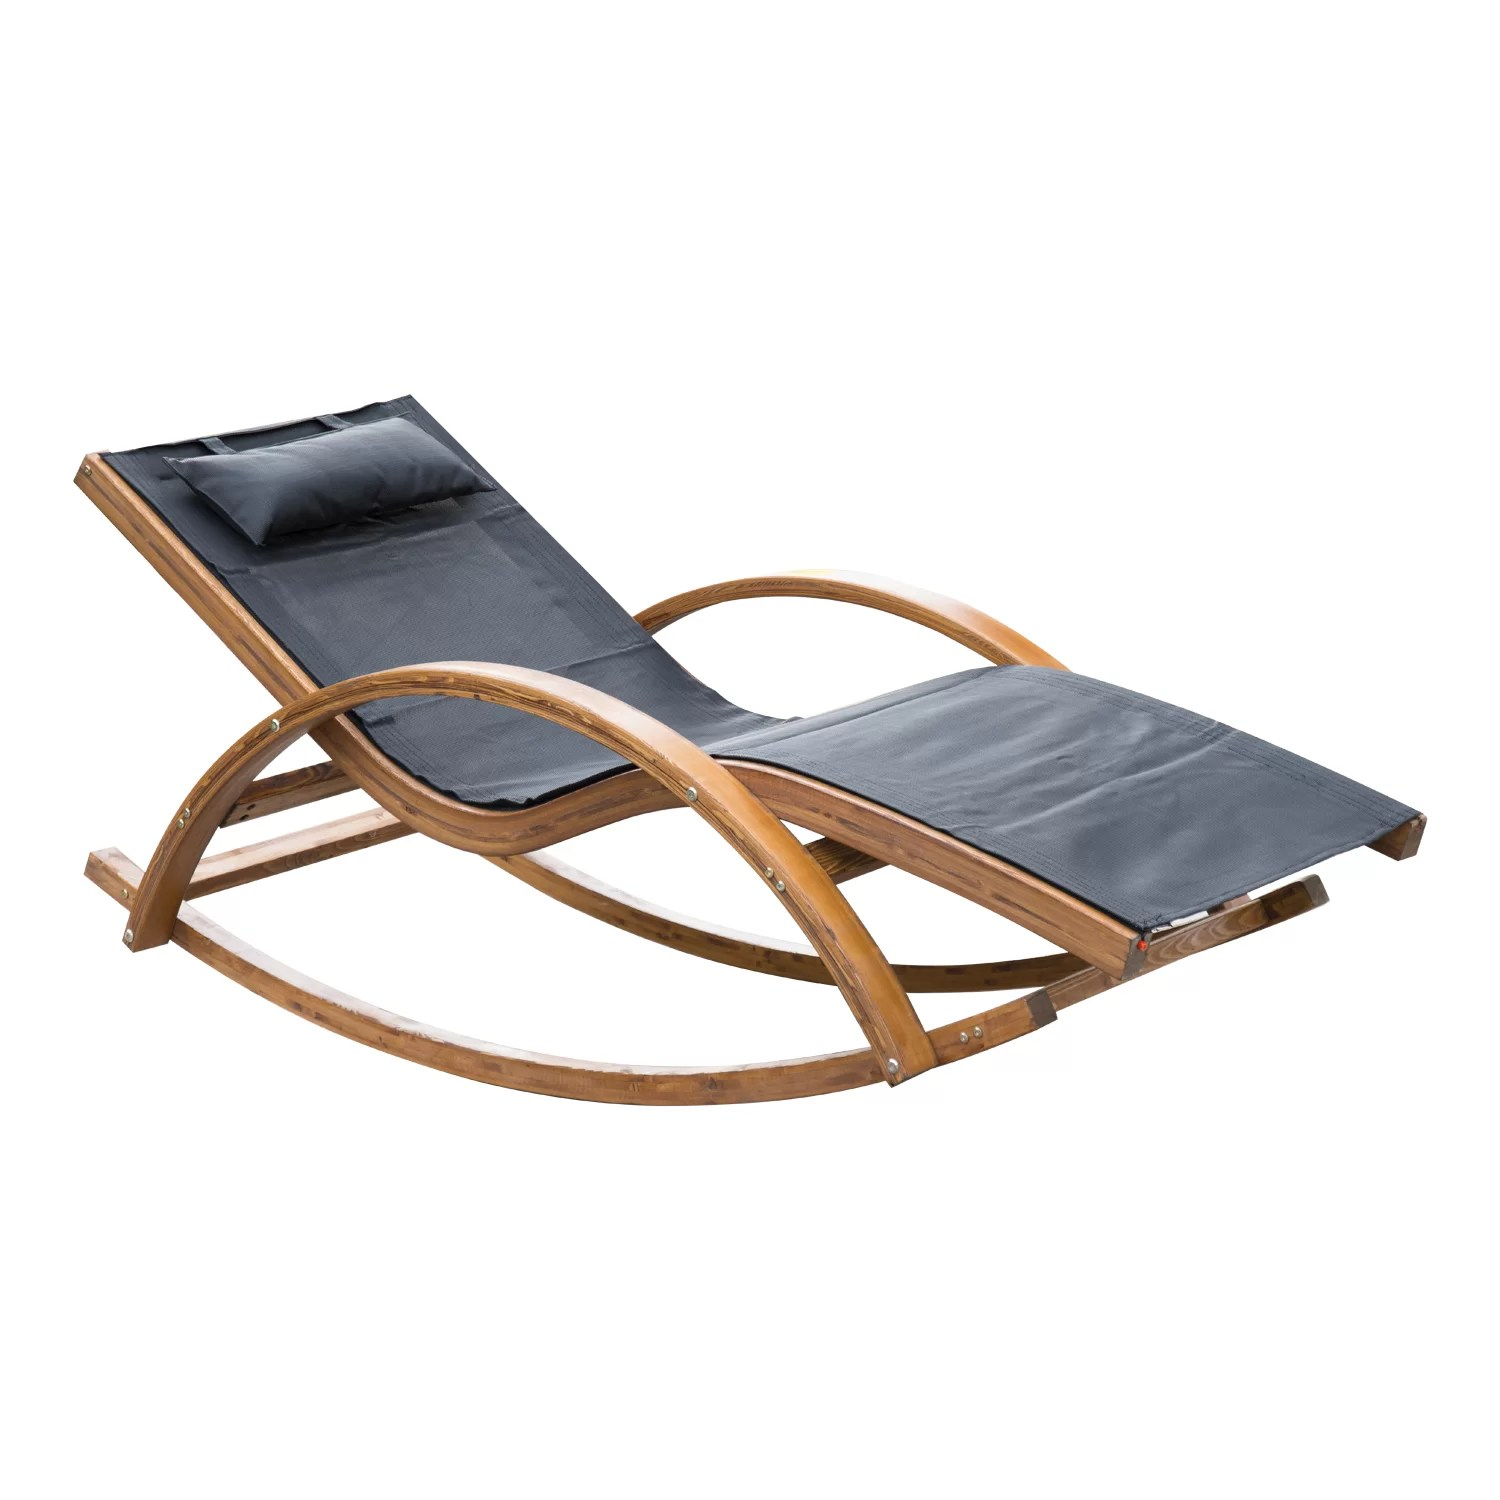 Teak Chaise Lounge Chairs Hunsaker Reclining Teak Chaise Lounge